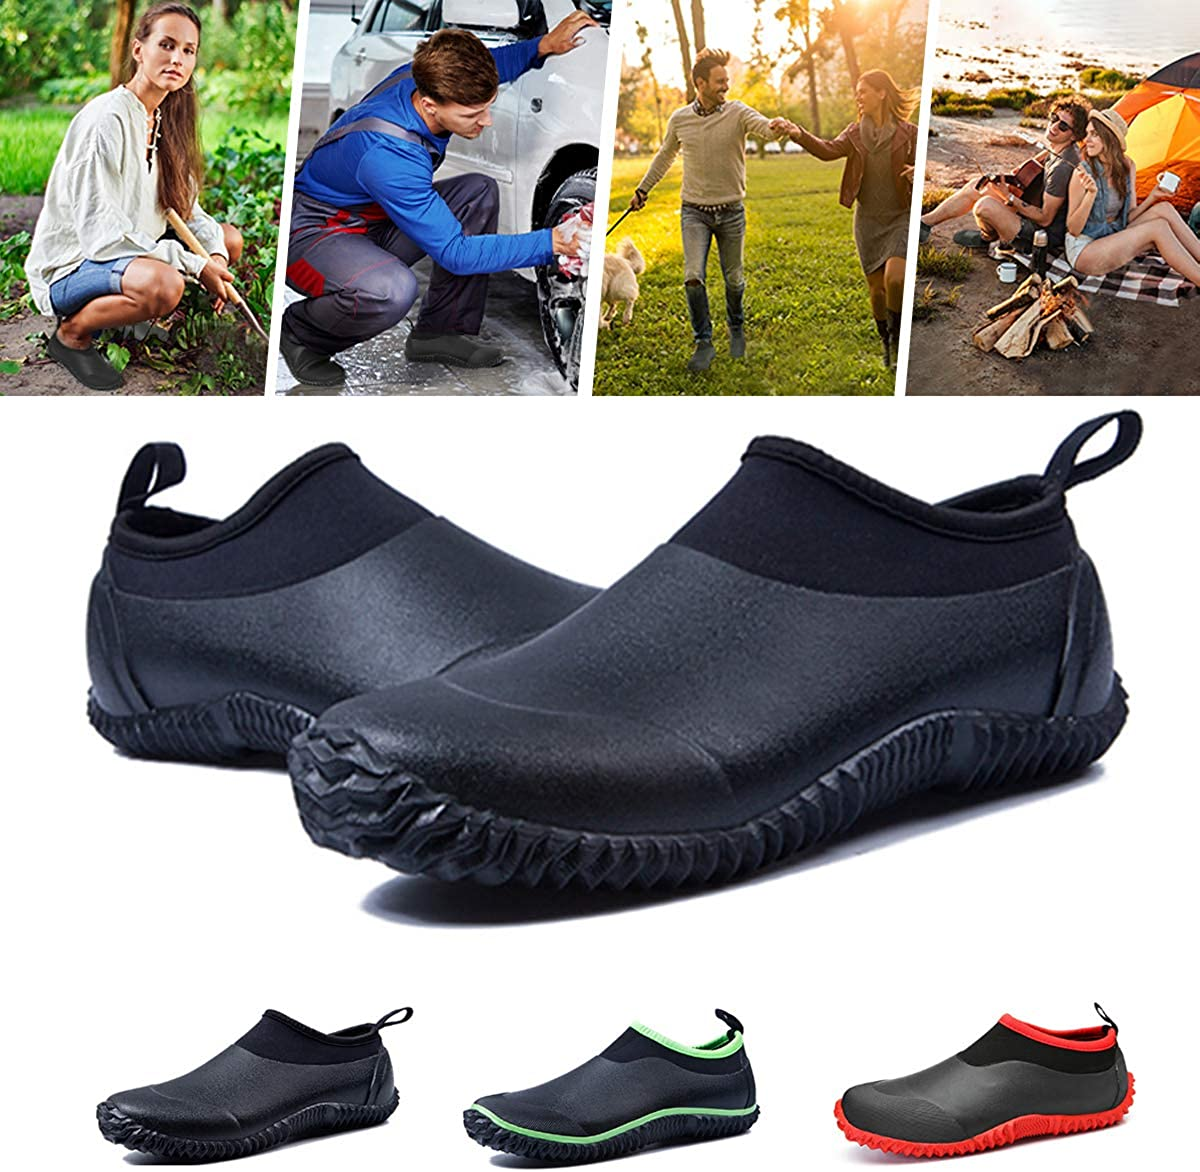 gracosy Unisex Rubber Water Shoes WAS £29.99 NOW £20.99 w/code gracosy0914b @ Amazon